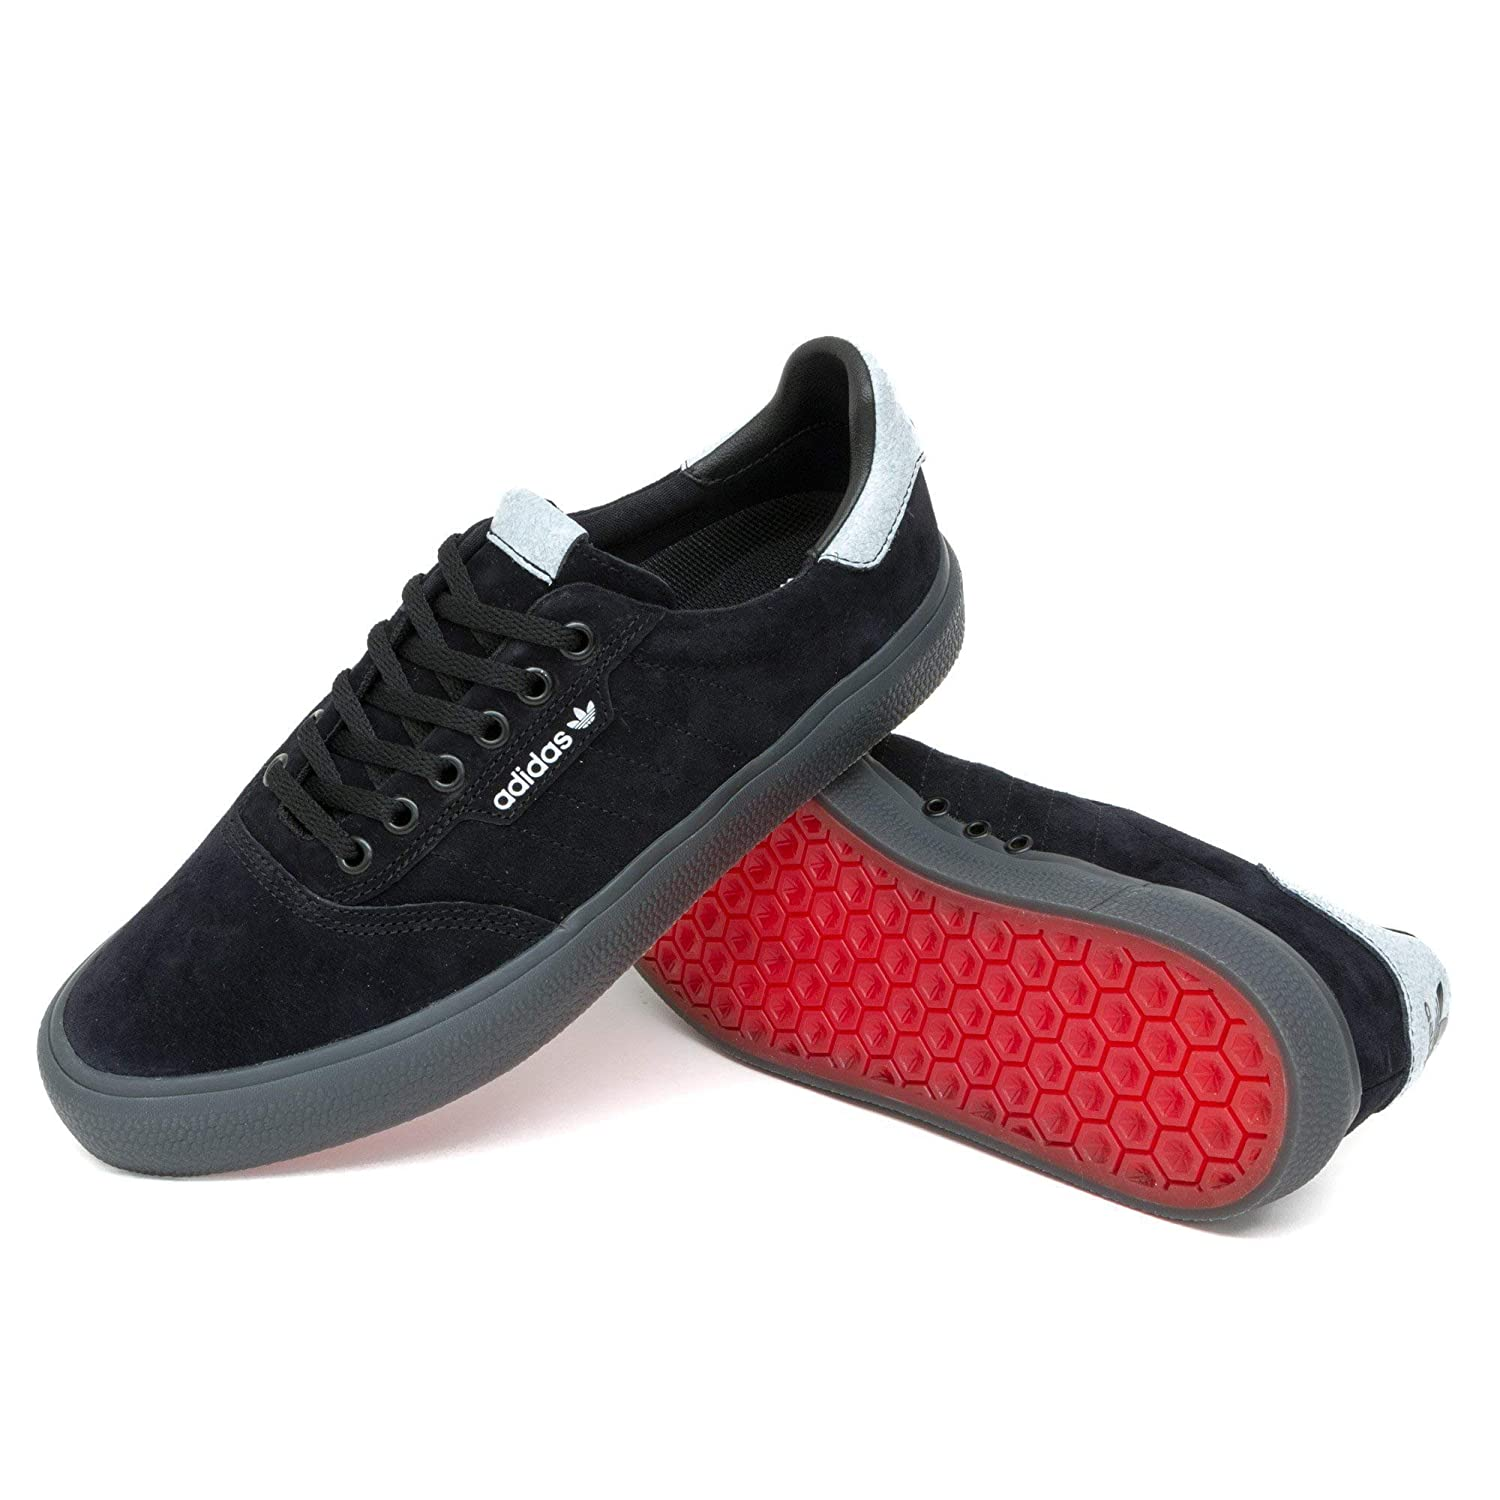 1be745ef3fd36 adidas Unisex Adults  3mc Fitness Shoes  Amazon.co.uk  Shoes   Bags